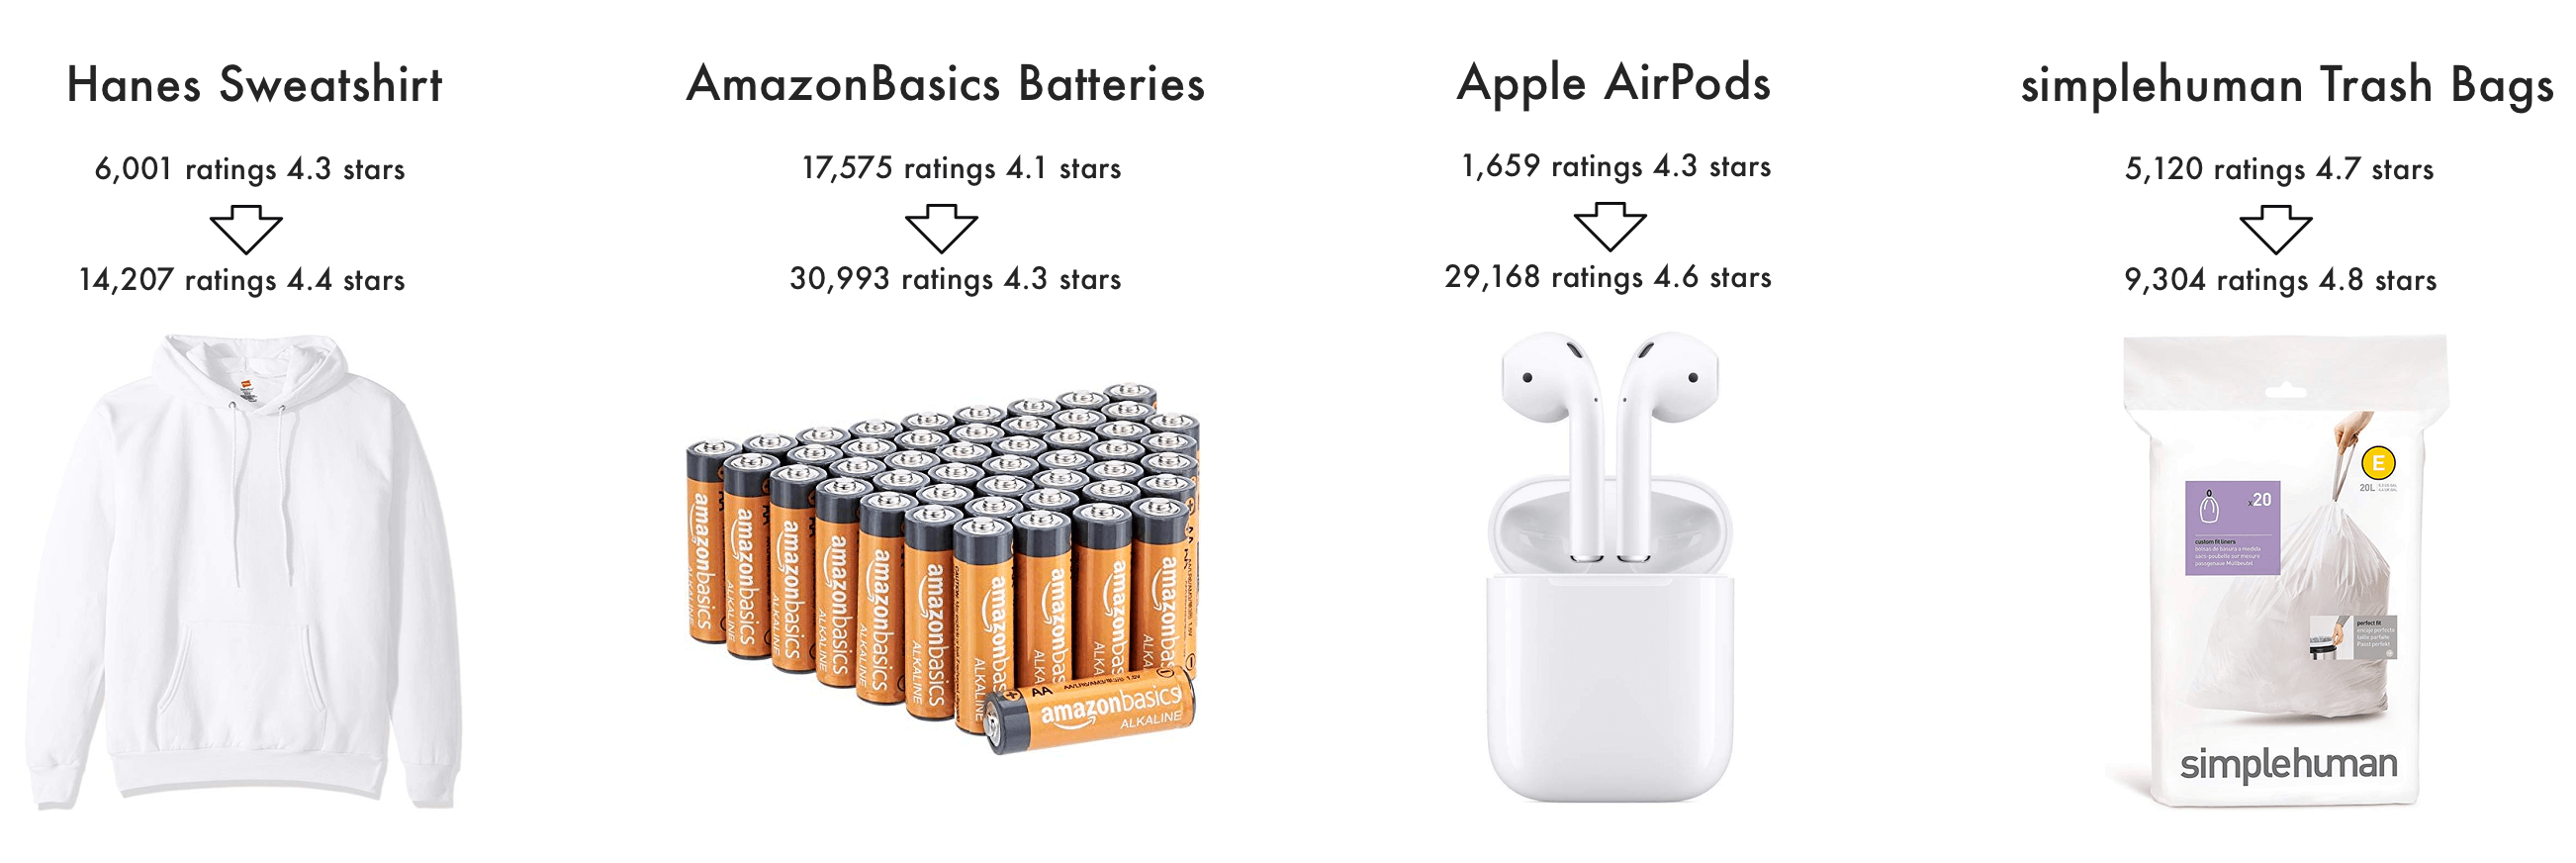 Products on Amazon Are Getting More Reviews and Higher Ratings